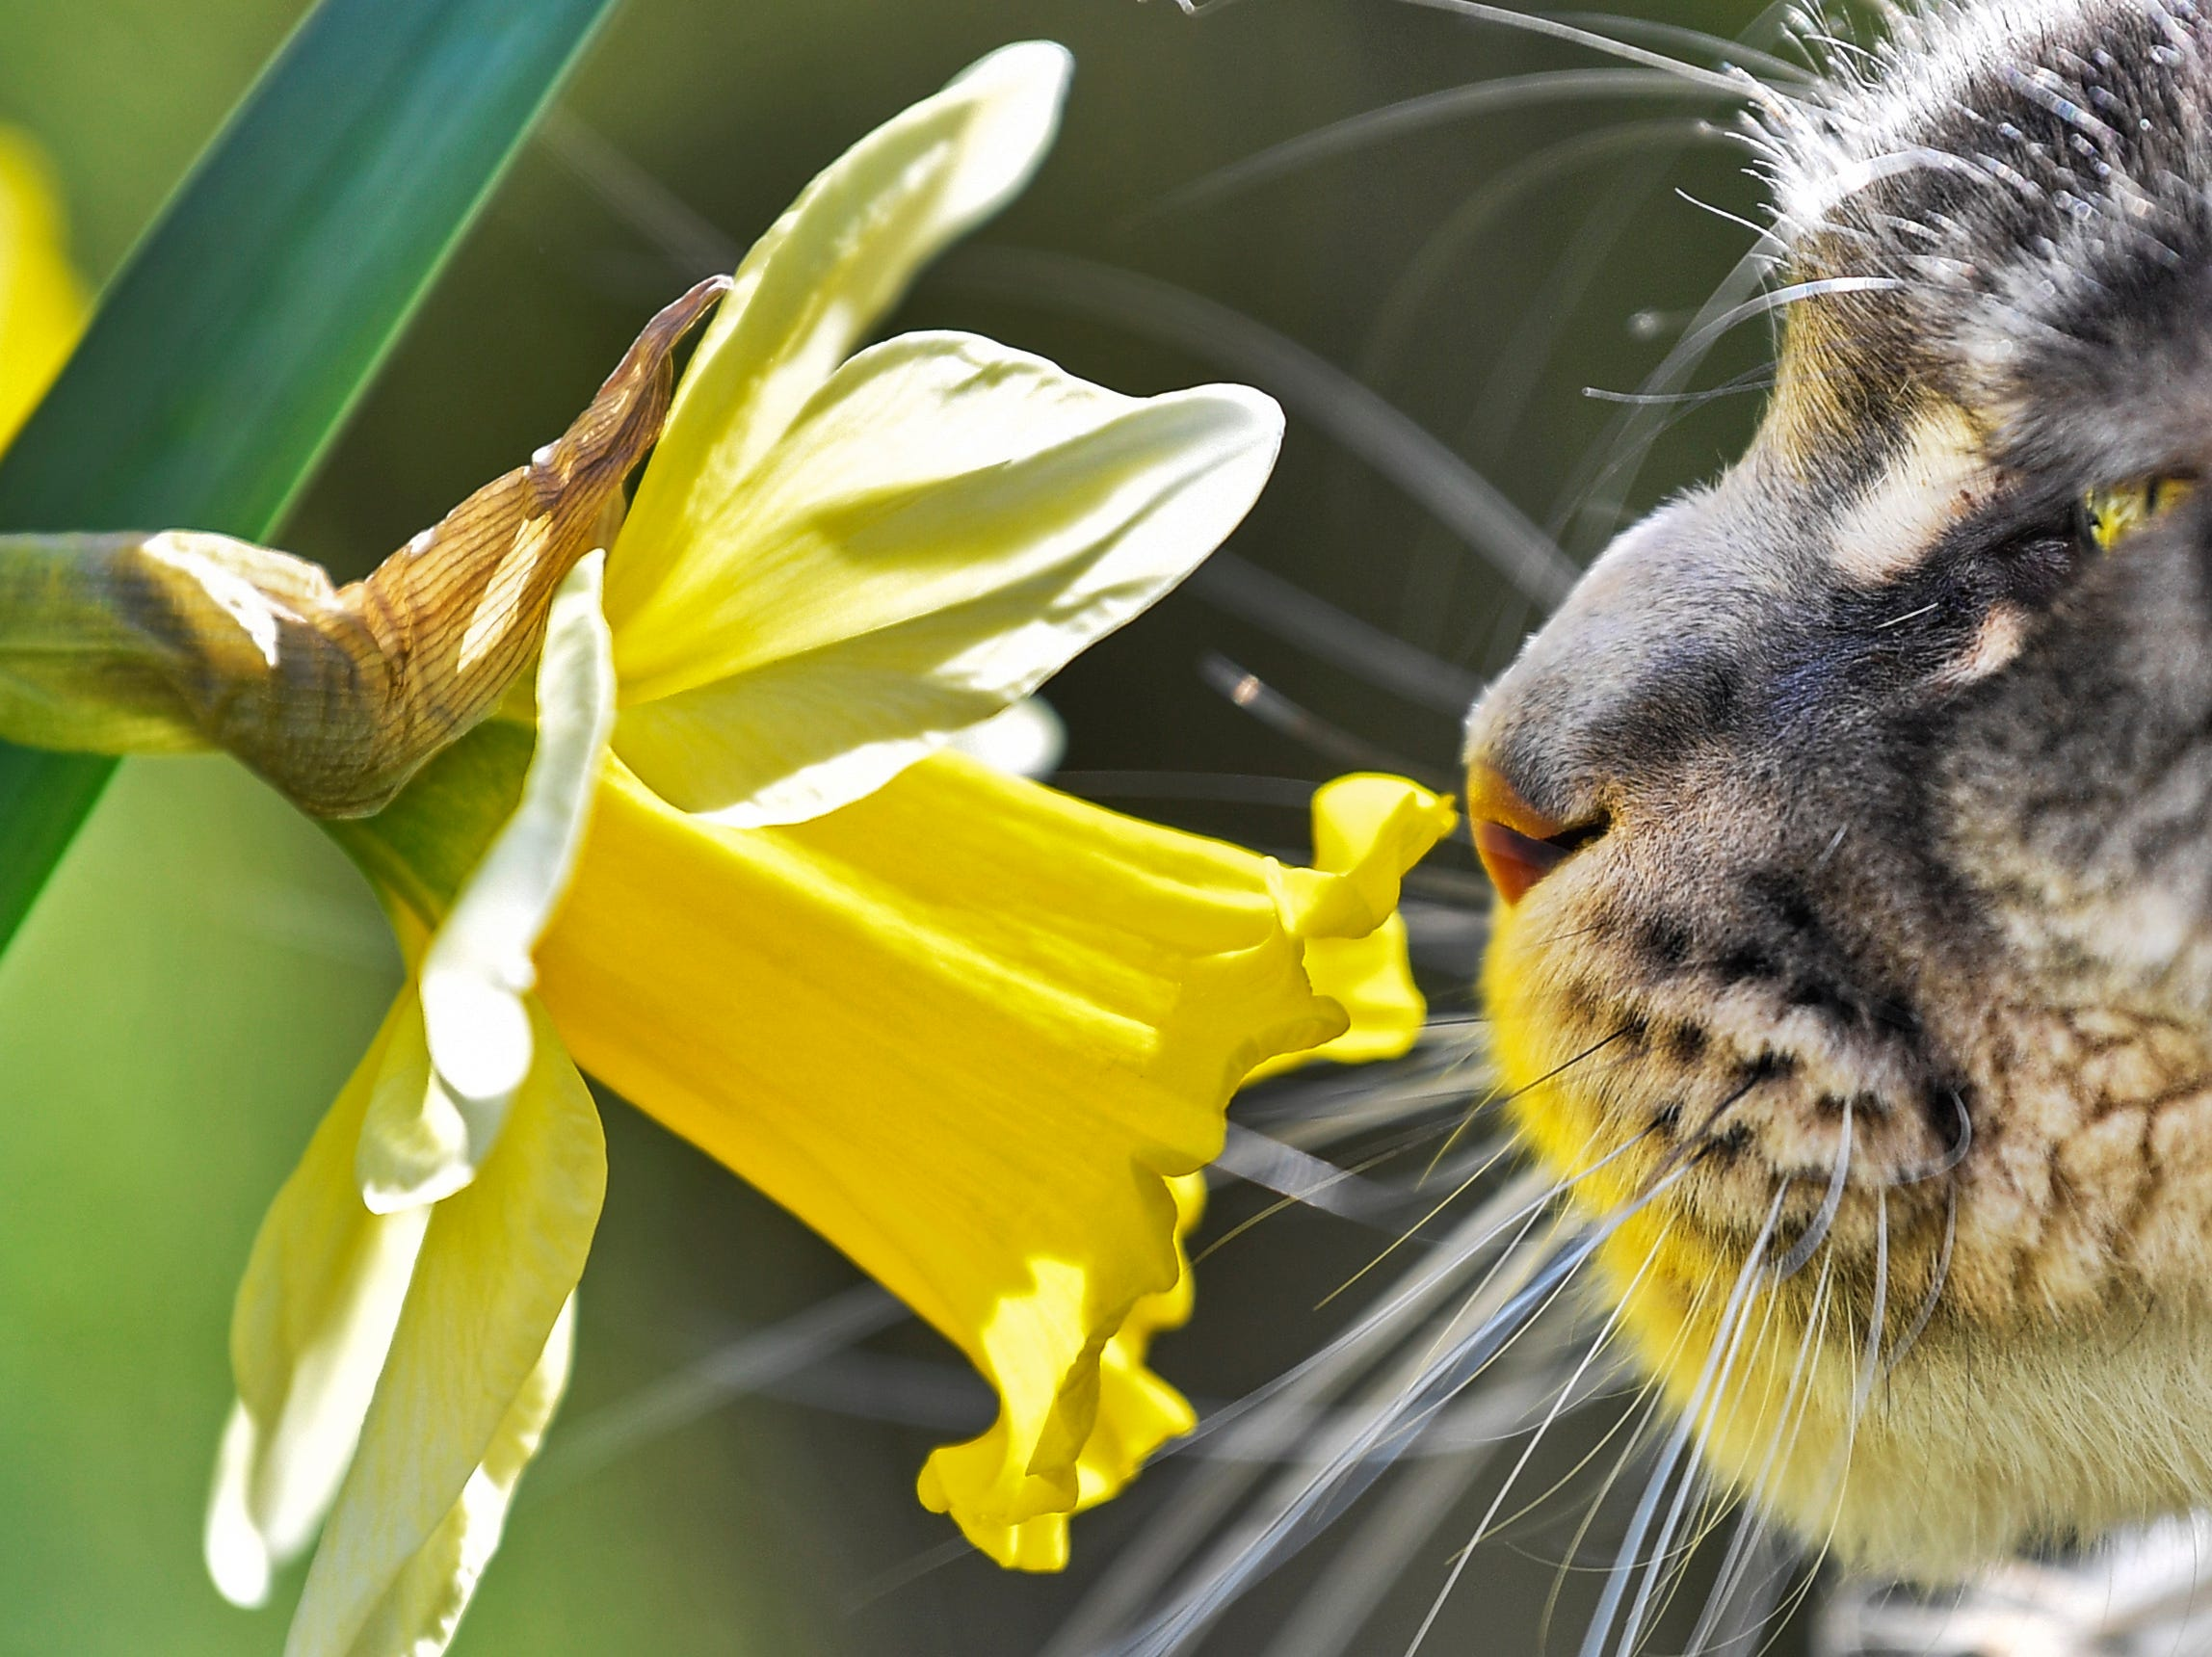 A cat smells at a flower in the warm spring sun in a garden in Gelsenkirchen, Germany, Friday, March 22, 2019.